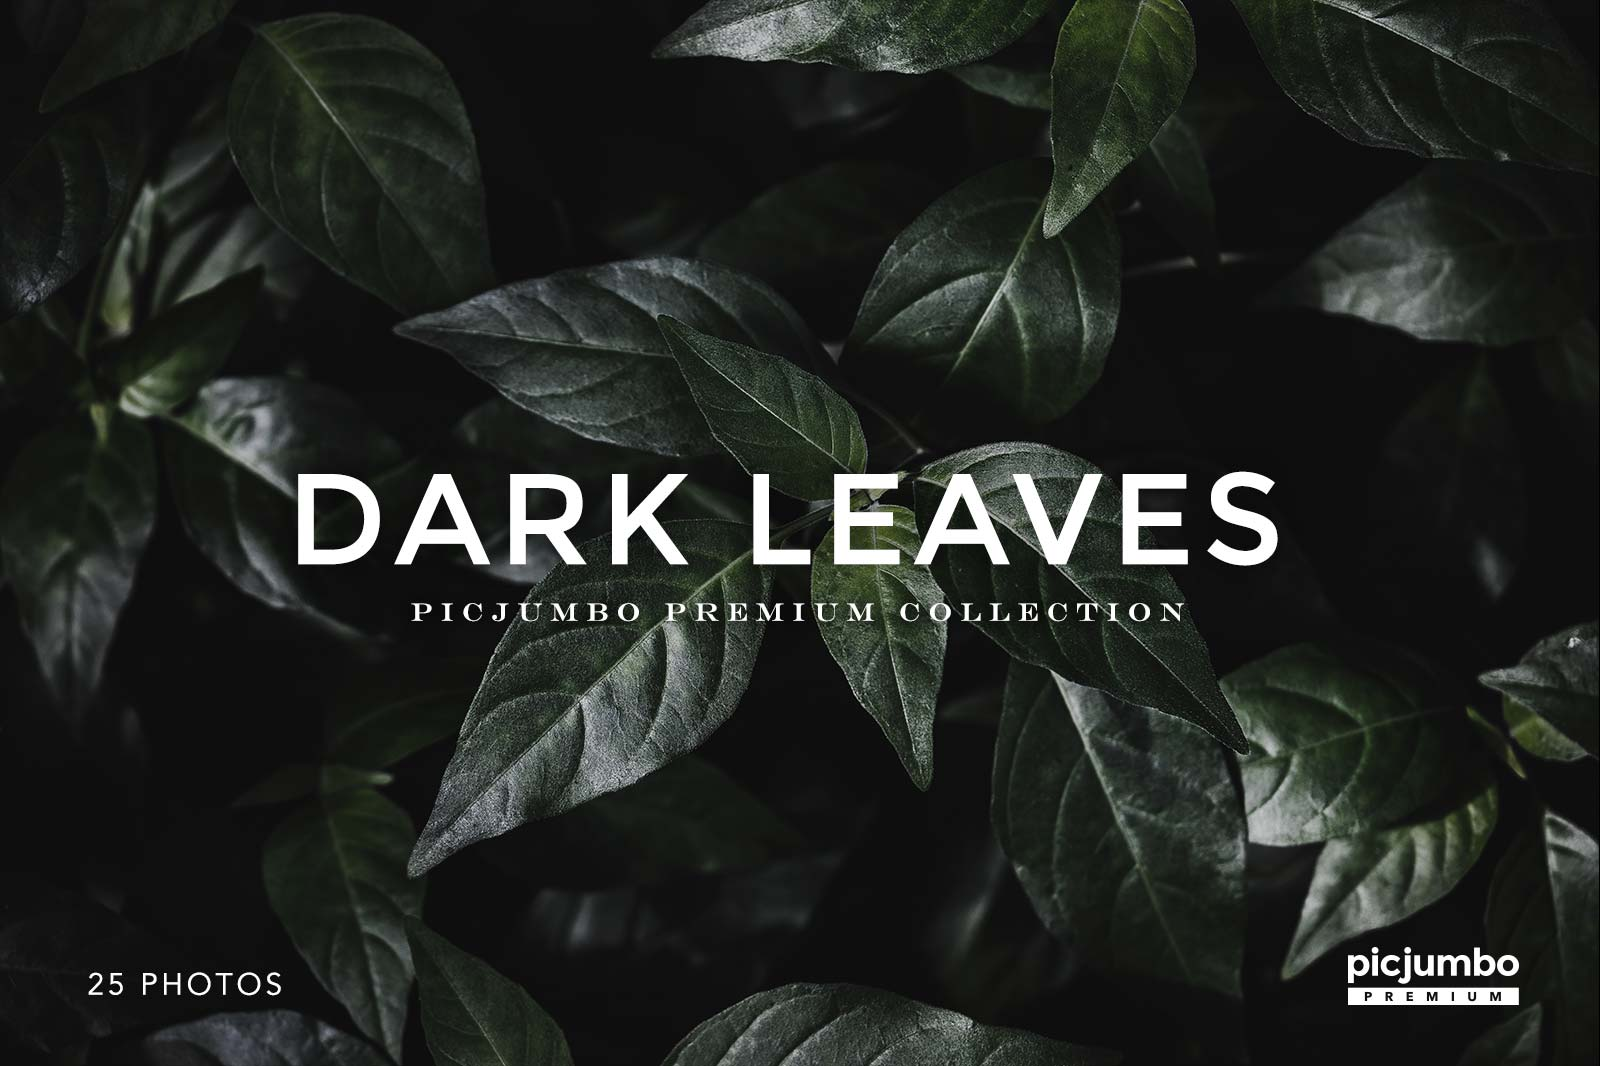 Dark Leaves — get it now in picjumbo PREMIUM!